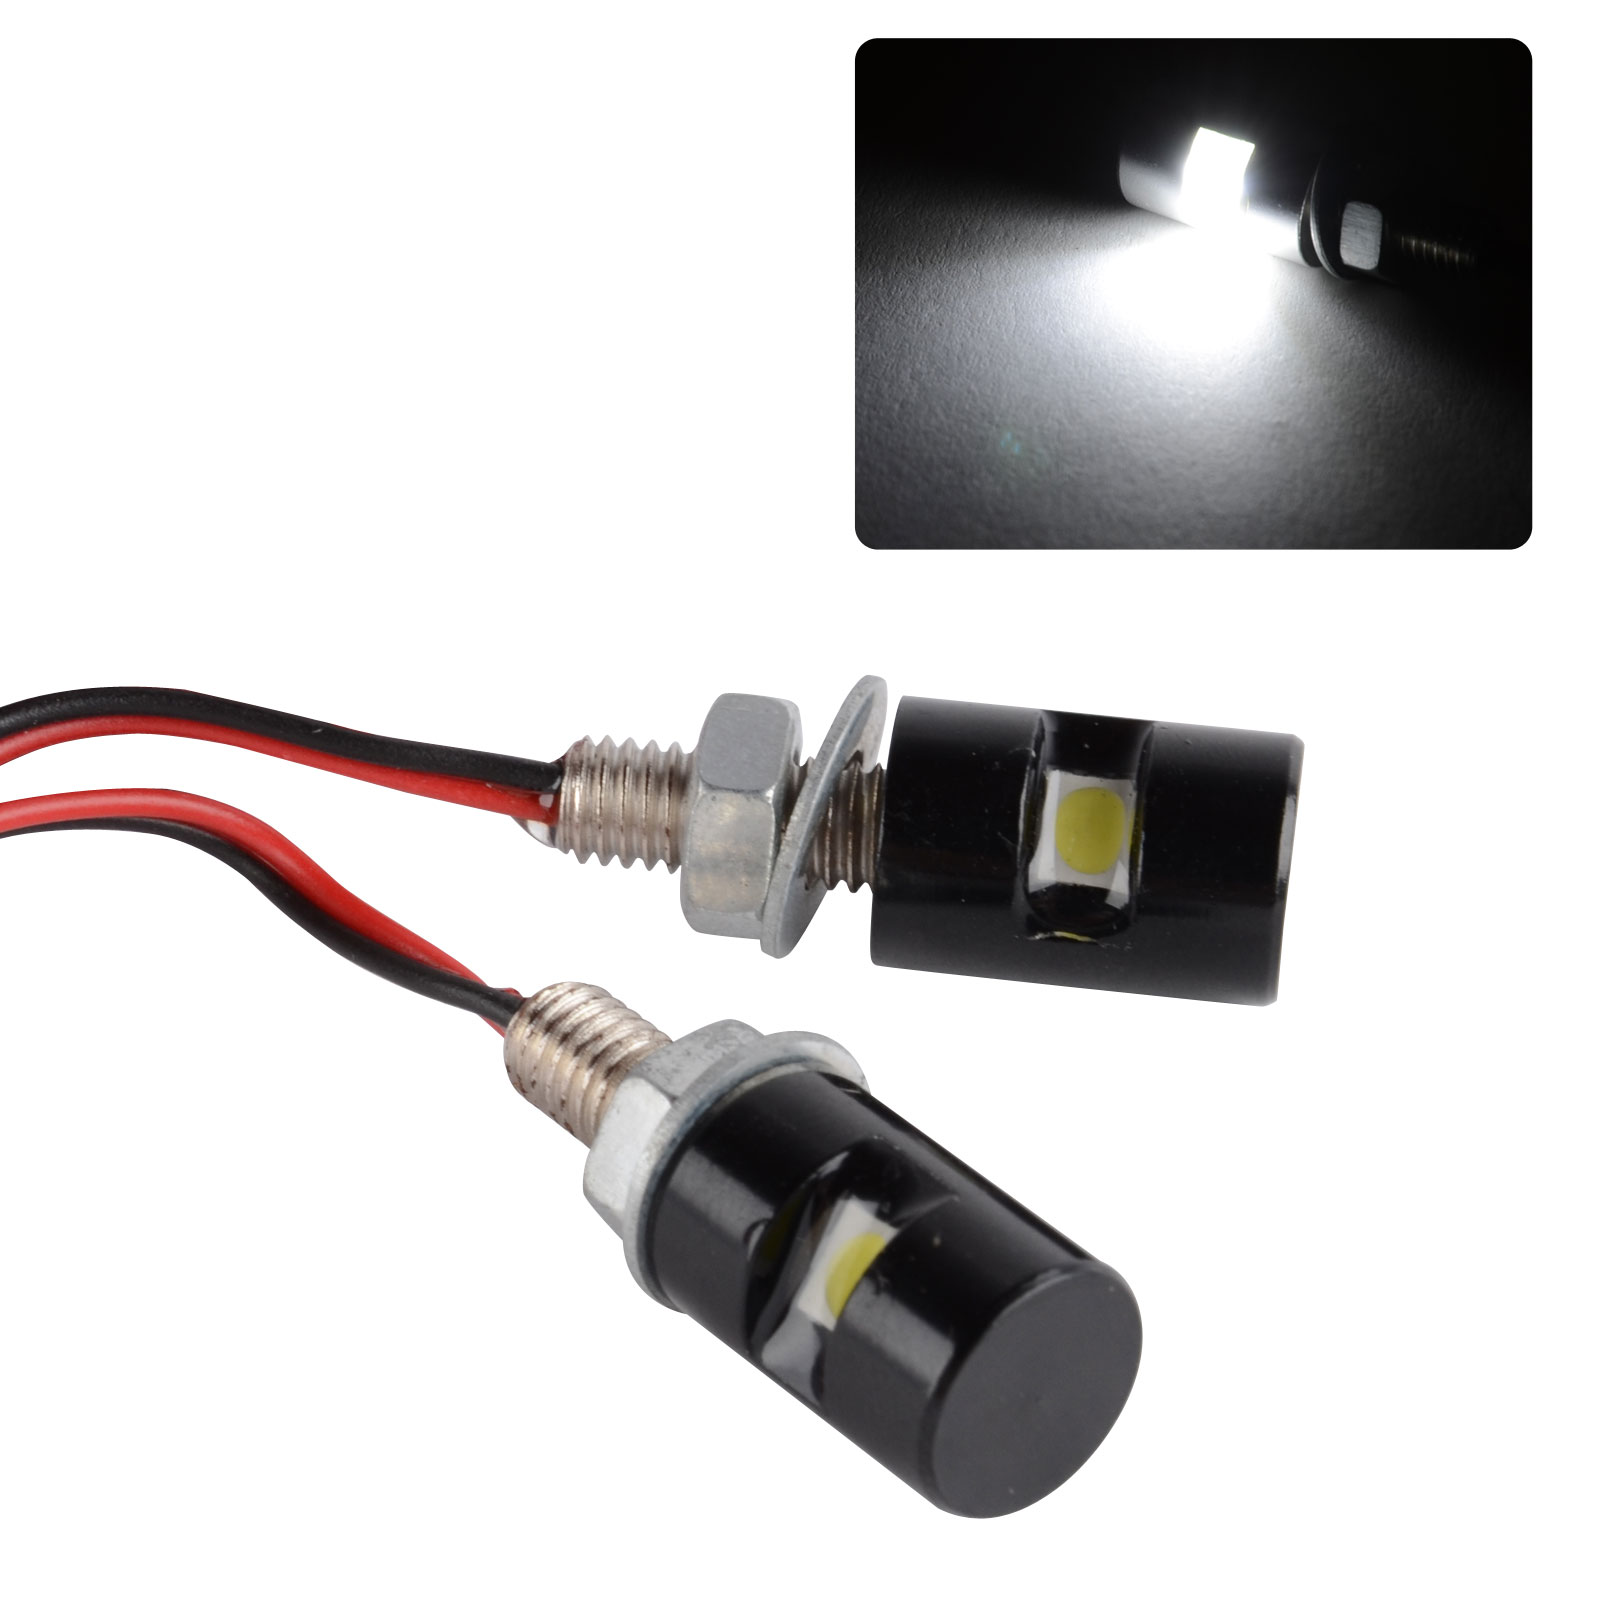 Mayitr 2pcs Car Motorcycle 12V White 5050 SMD LED License Plate Screw Bolt Light Super Bright Lamp